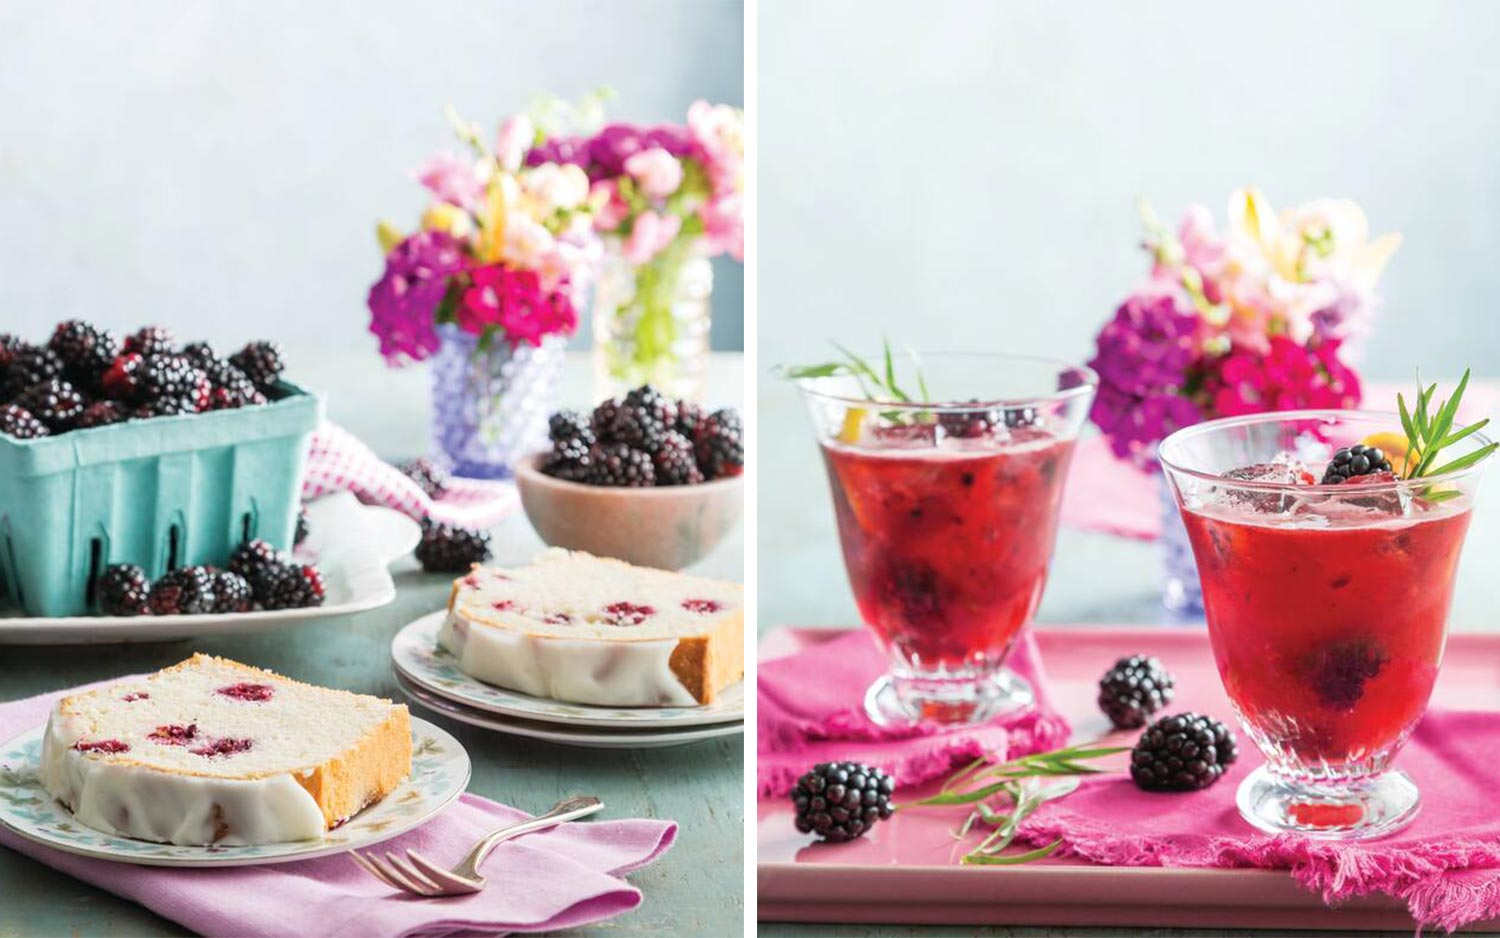 Four Summer Recipes Full of Bountiful Berries